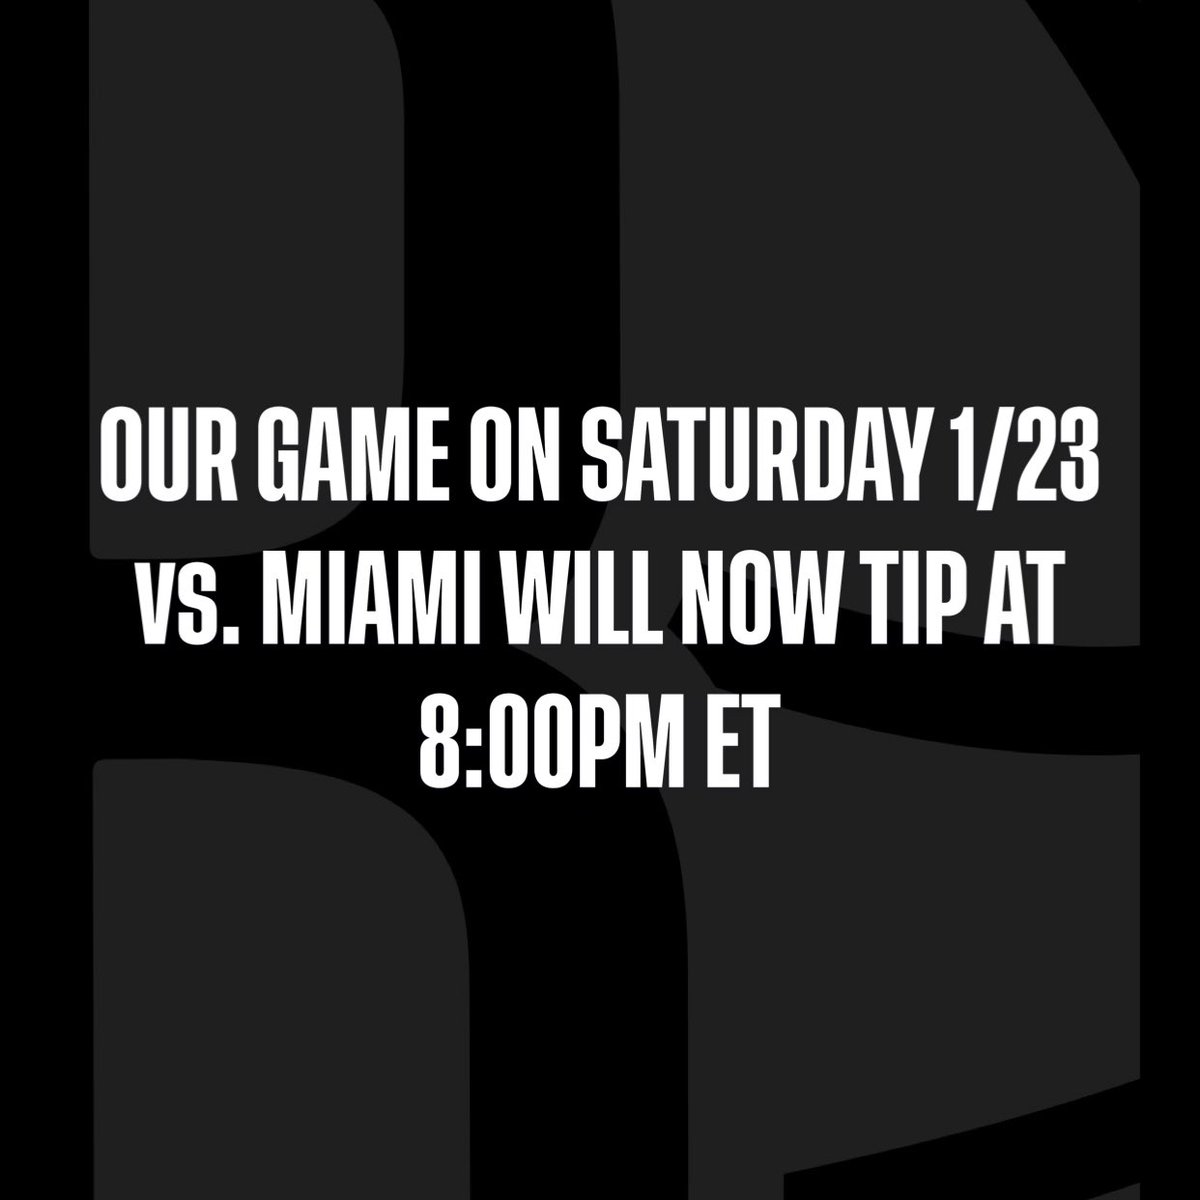 Scheduling note for this Saturday: